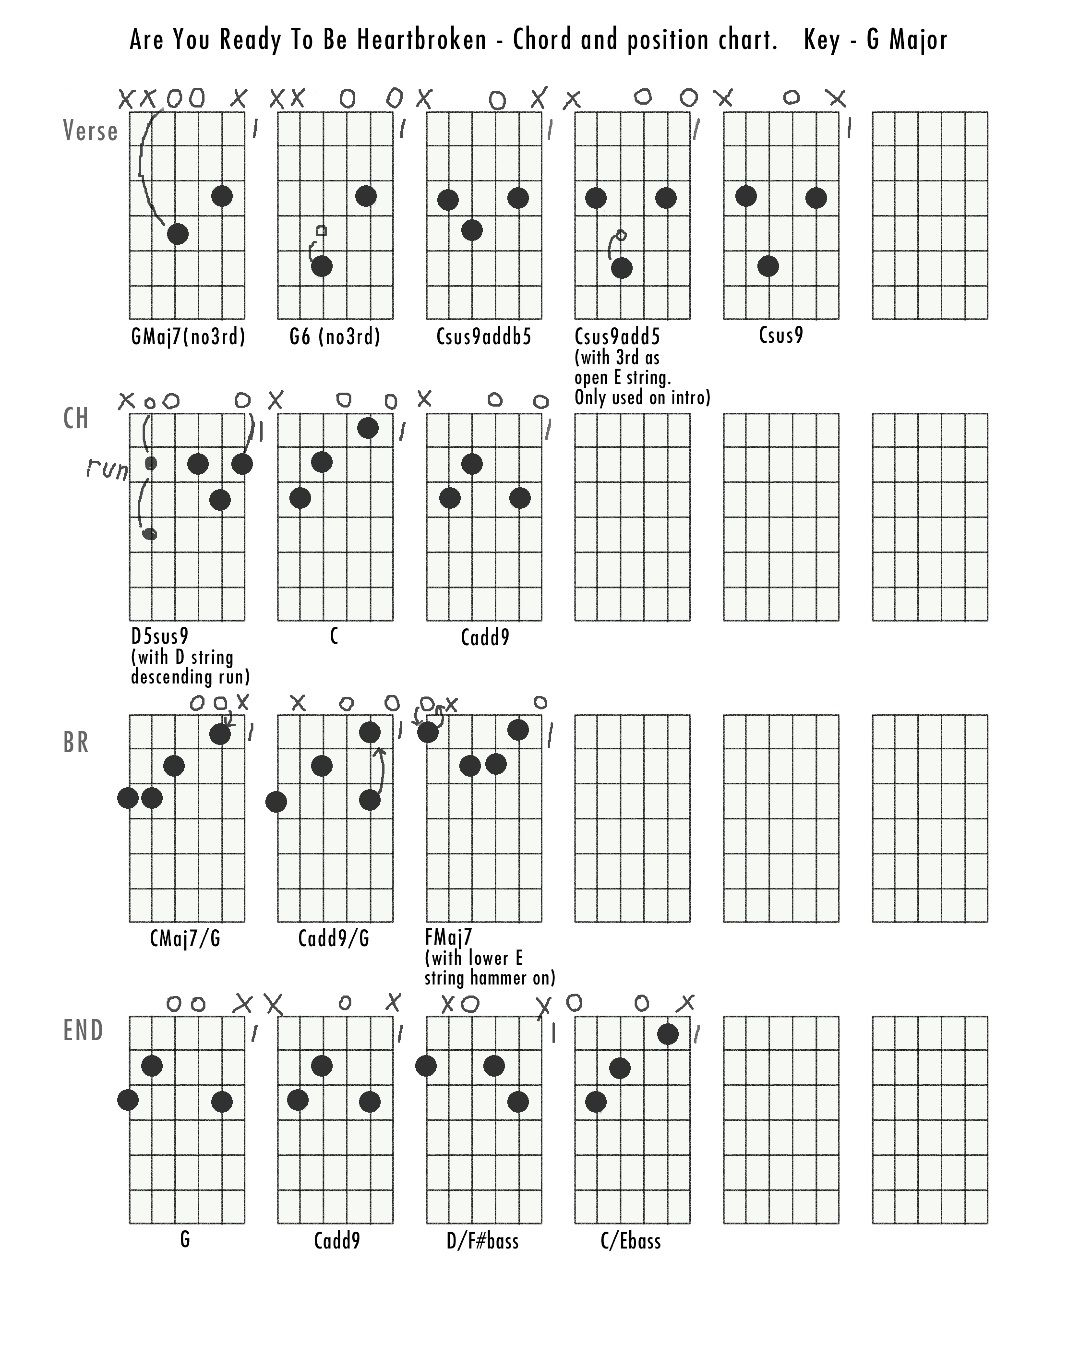 Hey Check This Site Out For Learning Guitar Amazing Stuff